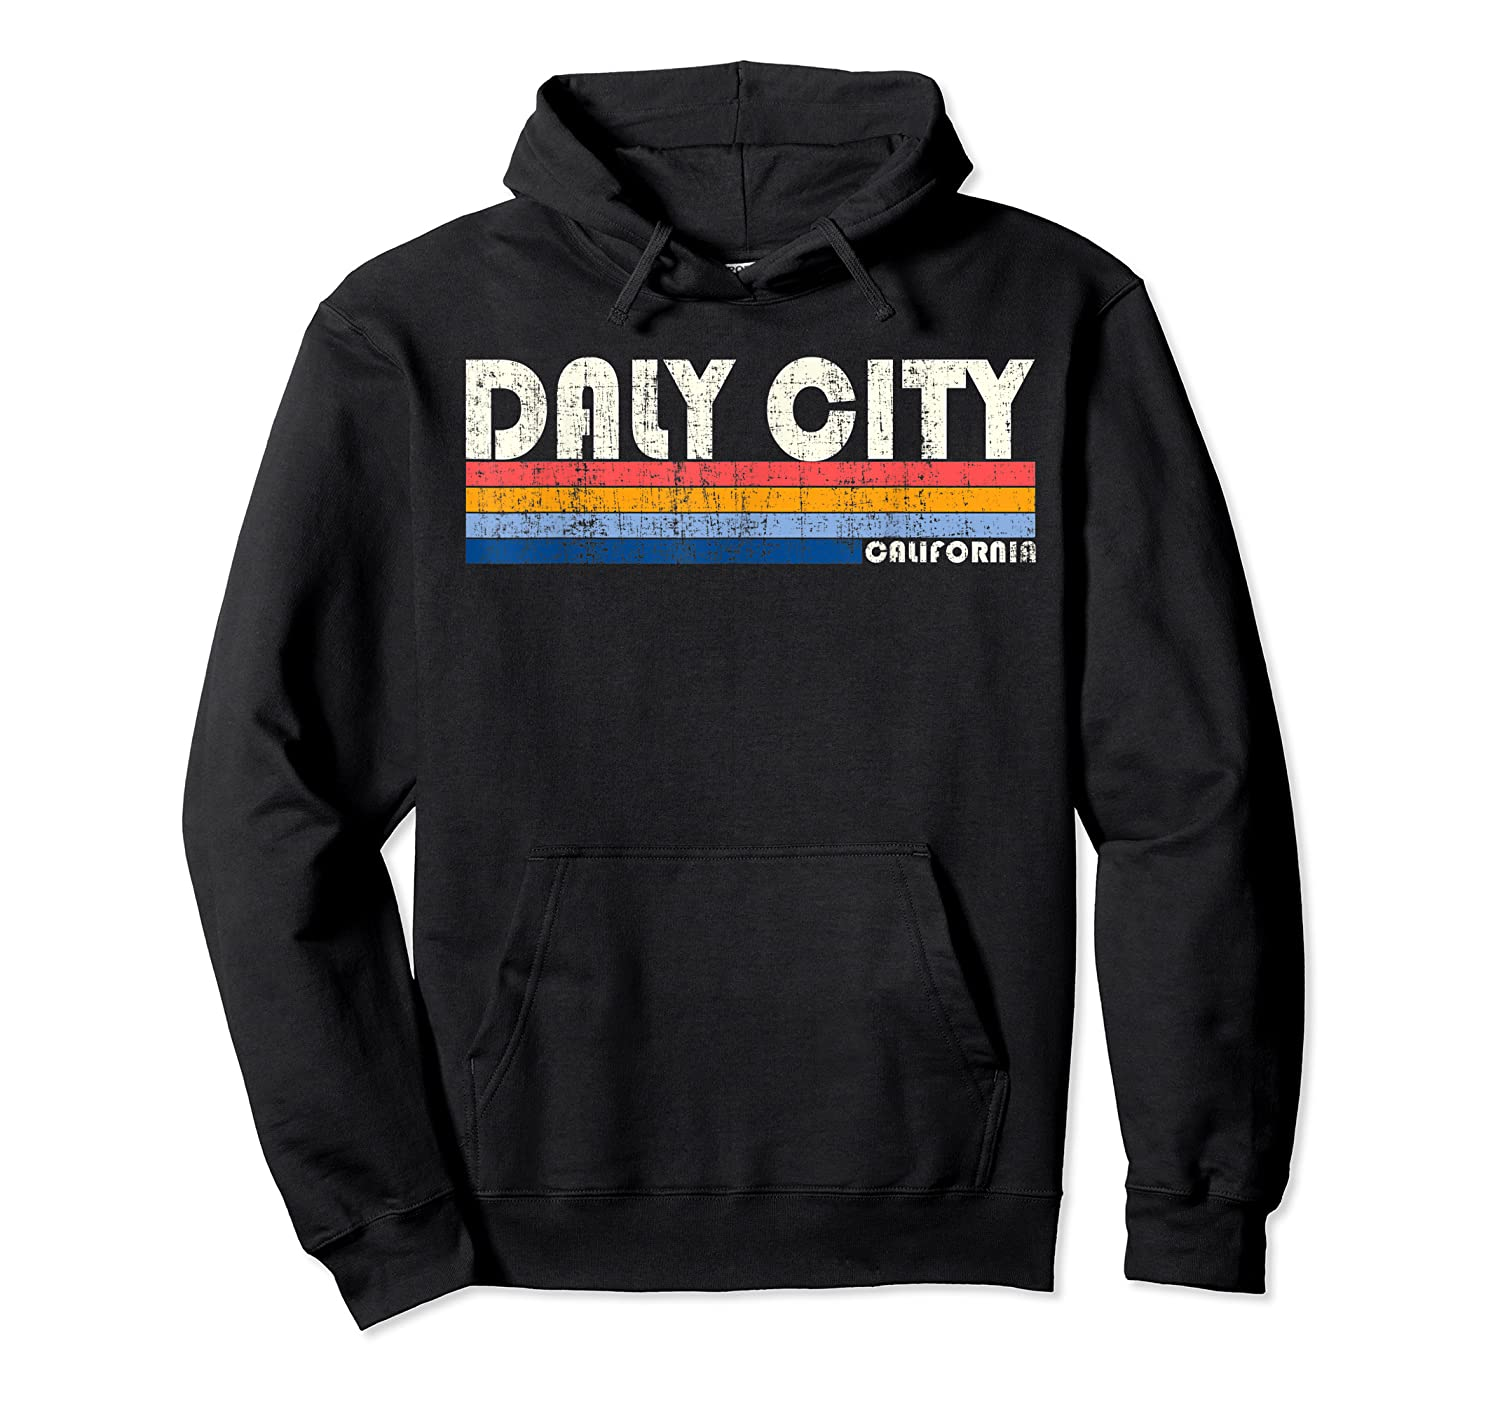 Vintage 70s 80s Style Daly City Ca T Shirt Unisex Pullover Hoodie